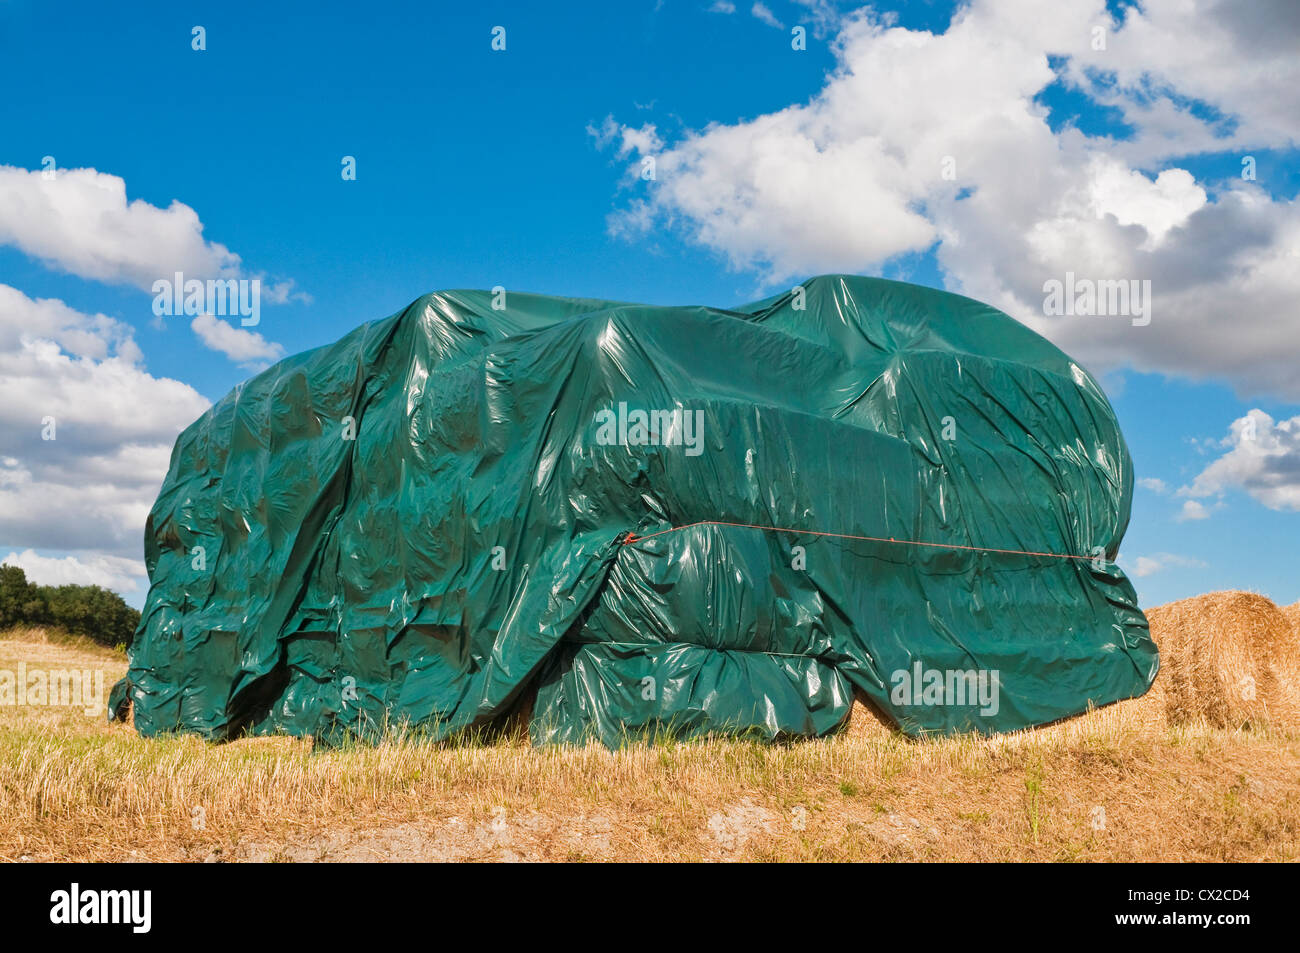 Stack of straw bales covered in plastic protective sheeting - sud-Touraine, France. - Stock Image